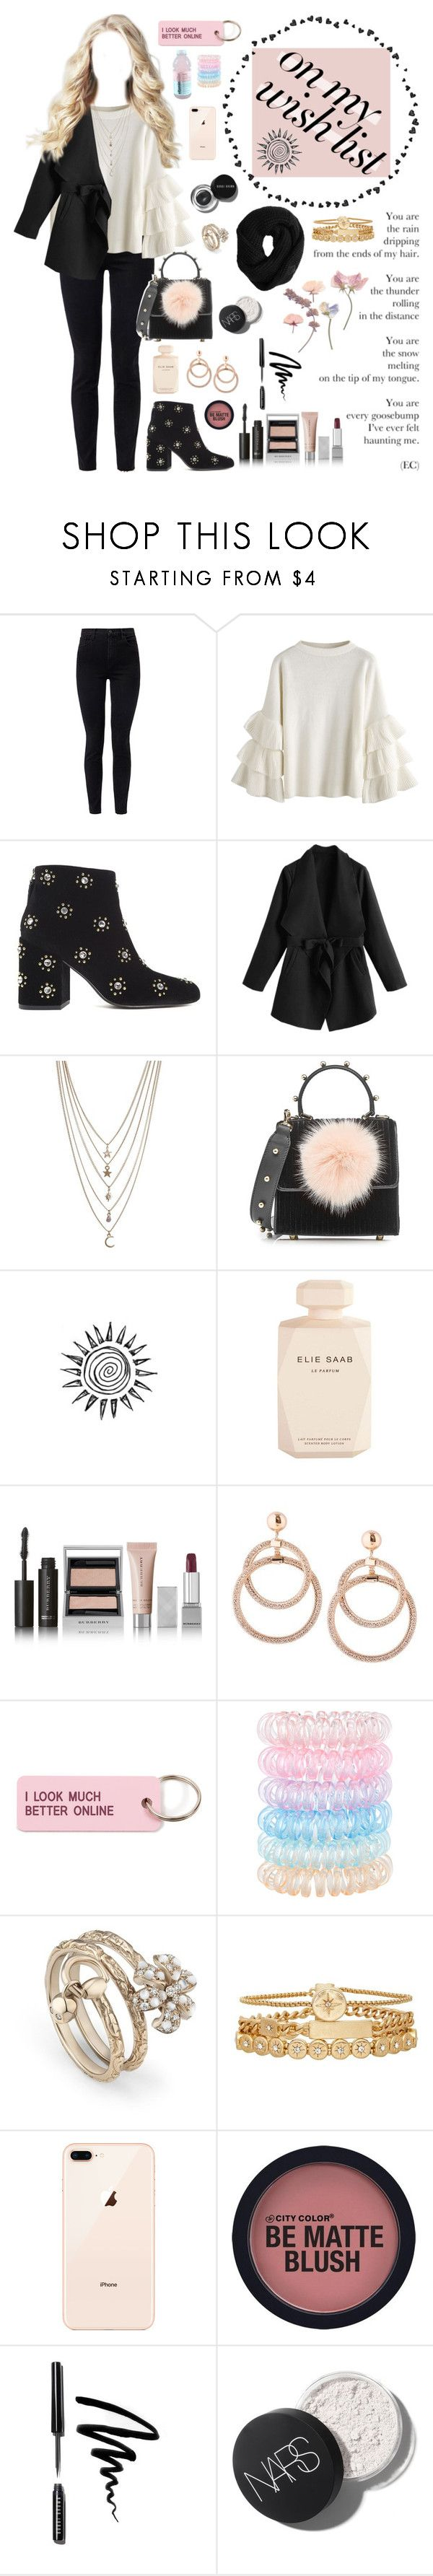 """""""#PolyPresents: Wish List"""" by bia-monteiro-98 ❤ liked on Polyvore featuring J Brand, Senso, Ettika, Les Petits Joueurs, Elie Saab, Burberry, Various Projects, Accessorize, Gucci and Treasure & Bond"""